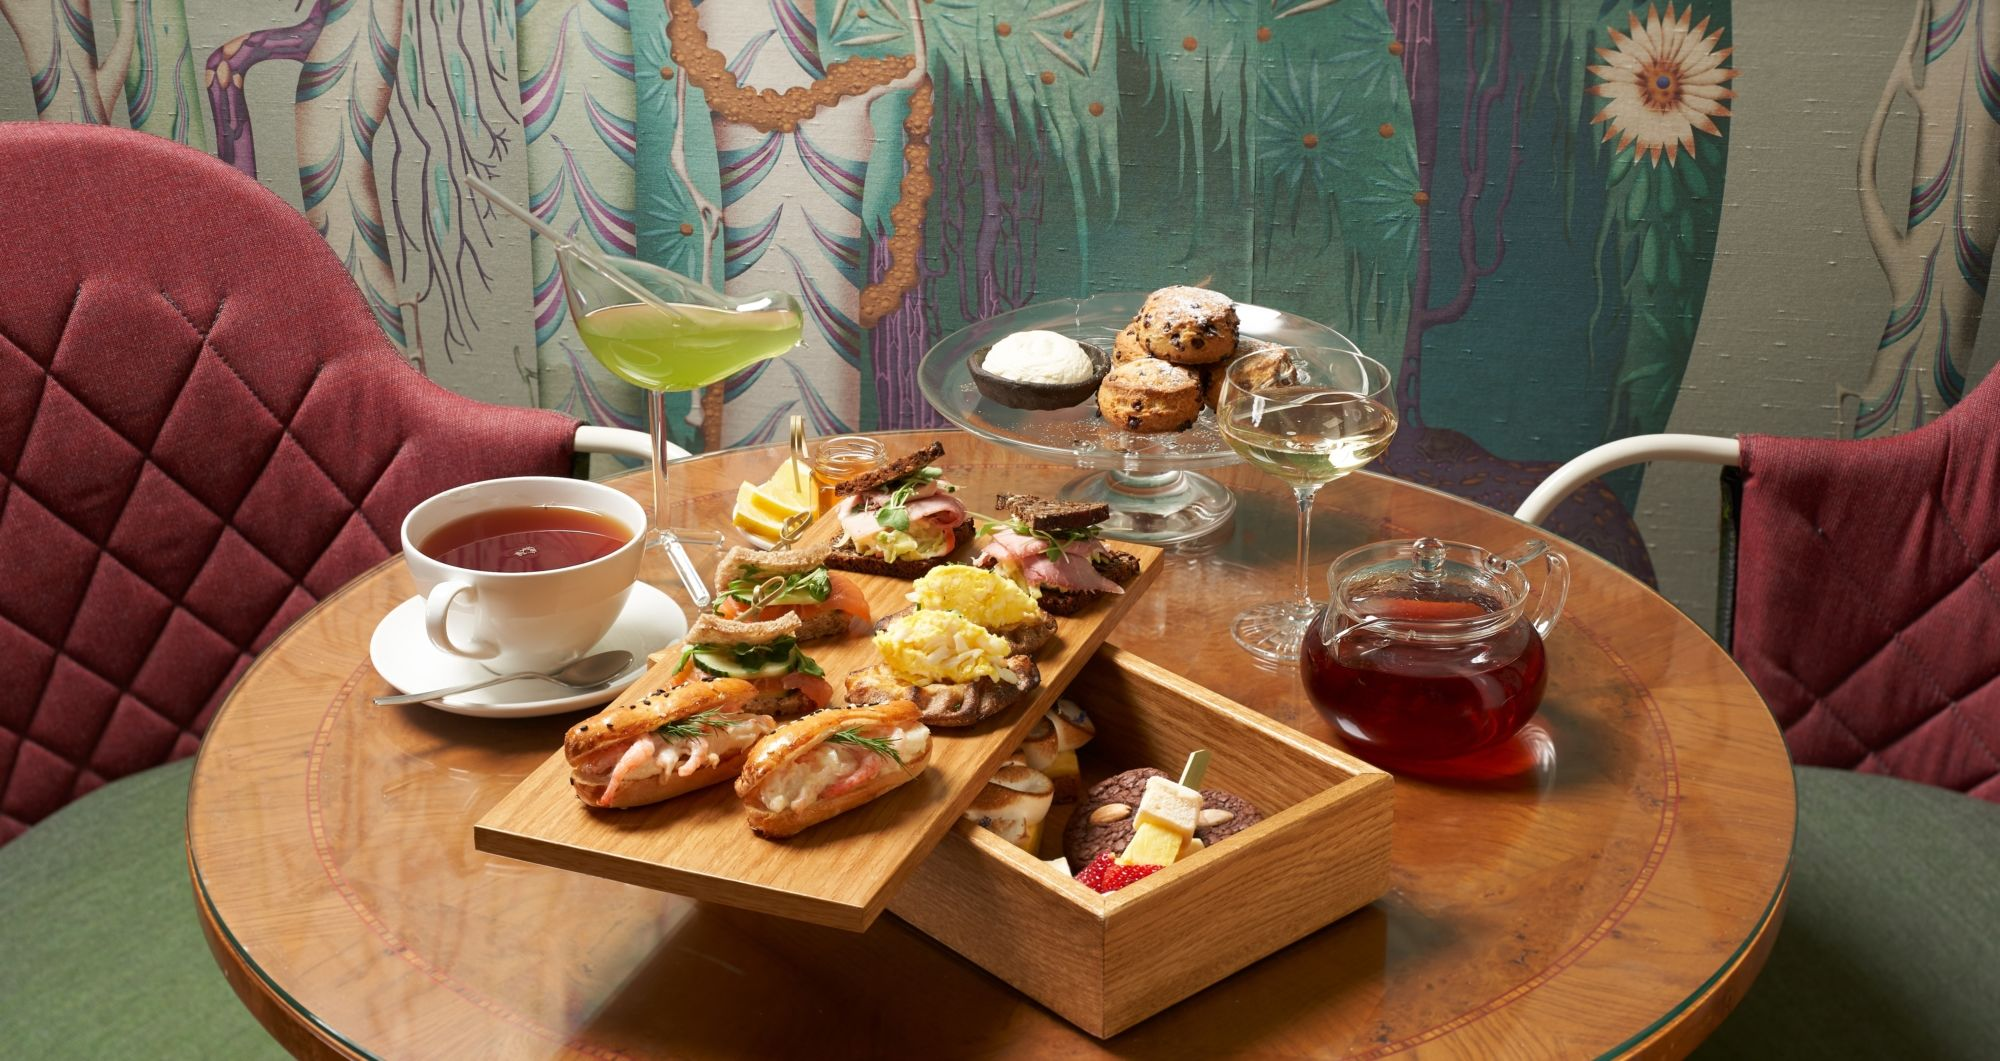 Tea Moments - enjoy Afternoon Tea in Wintergarden, Helsinki's most beautiful living room.